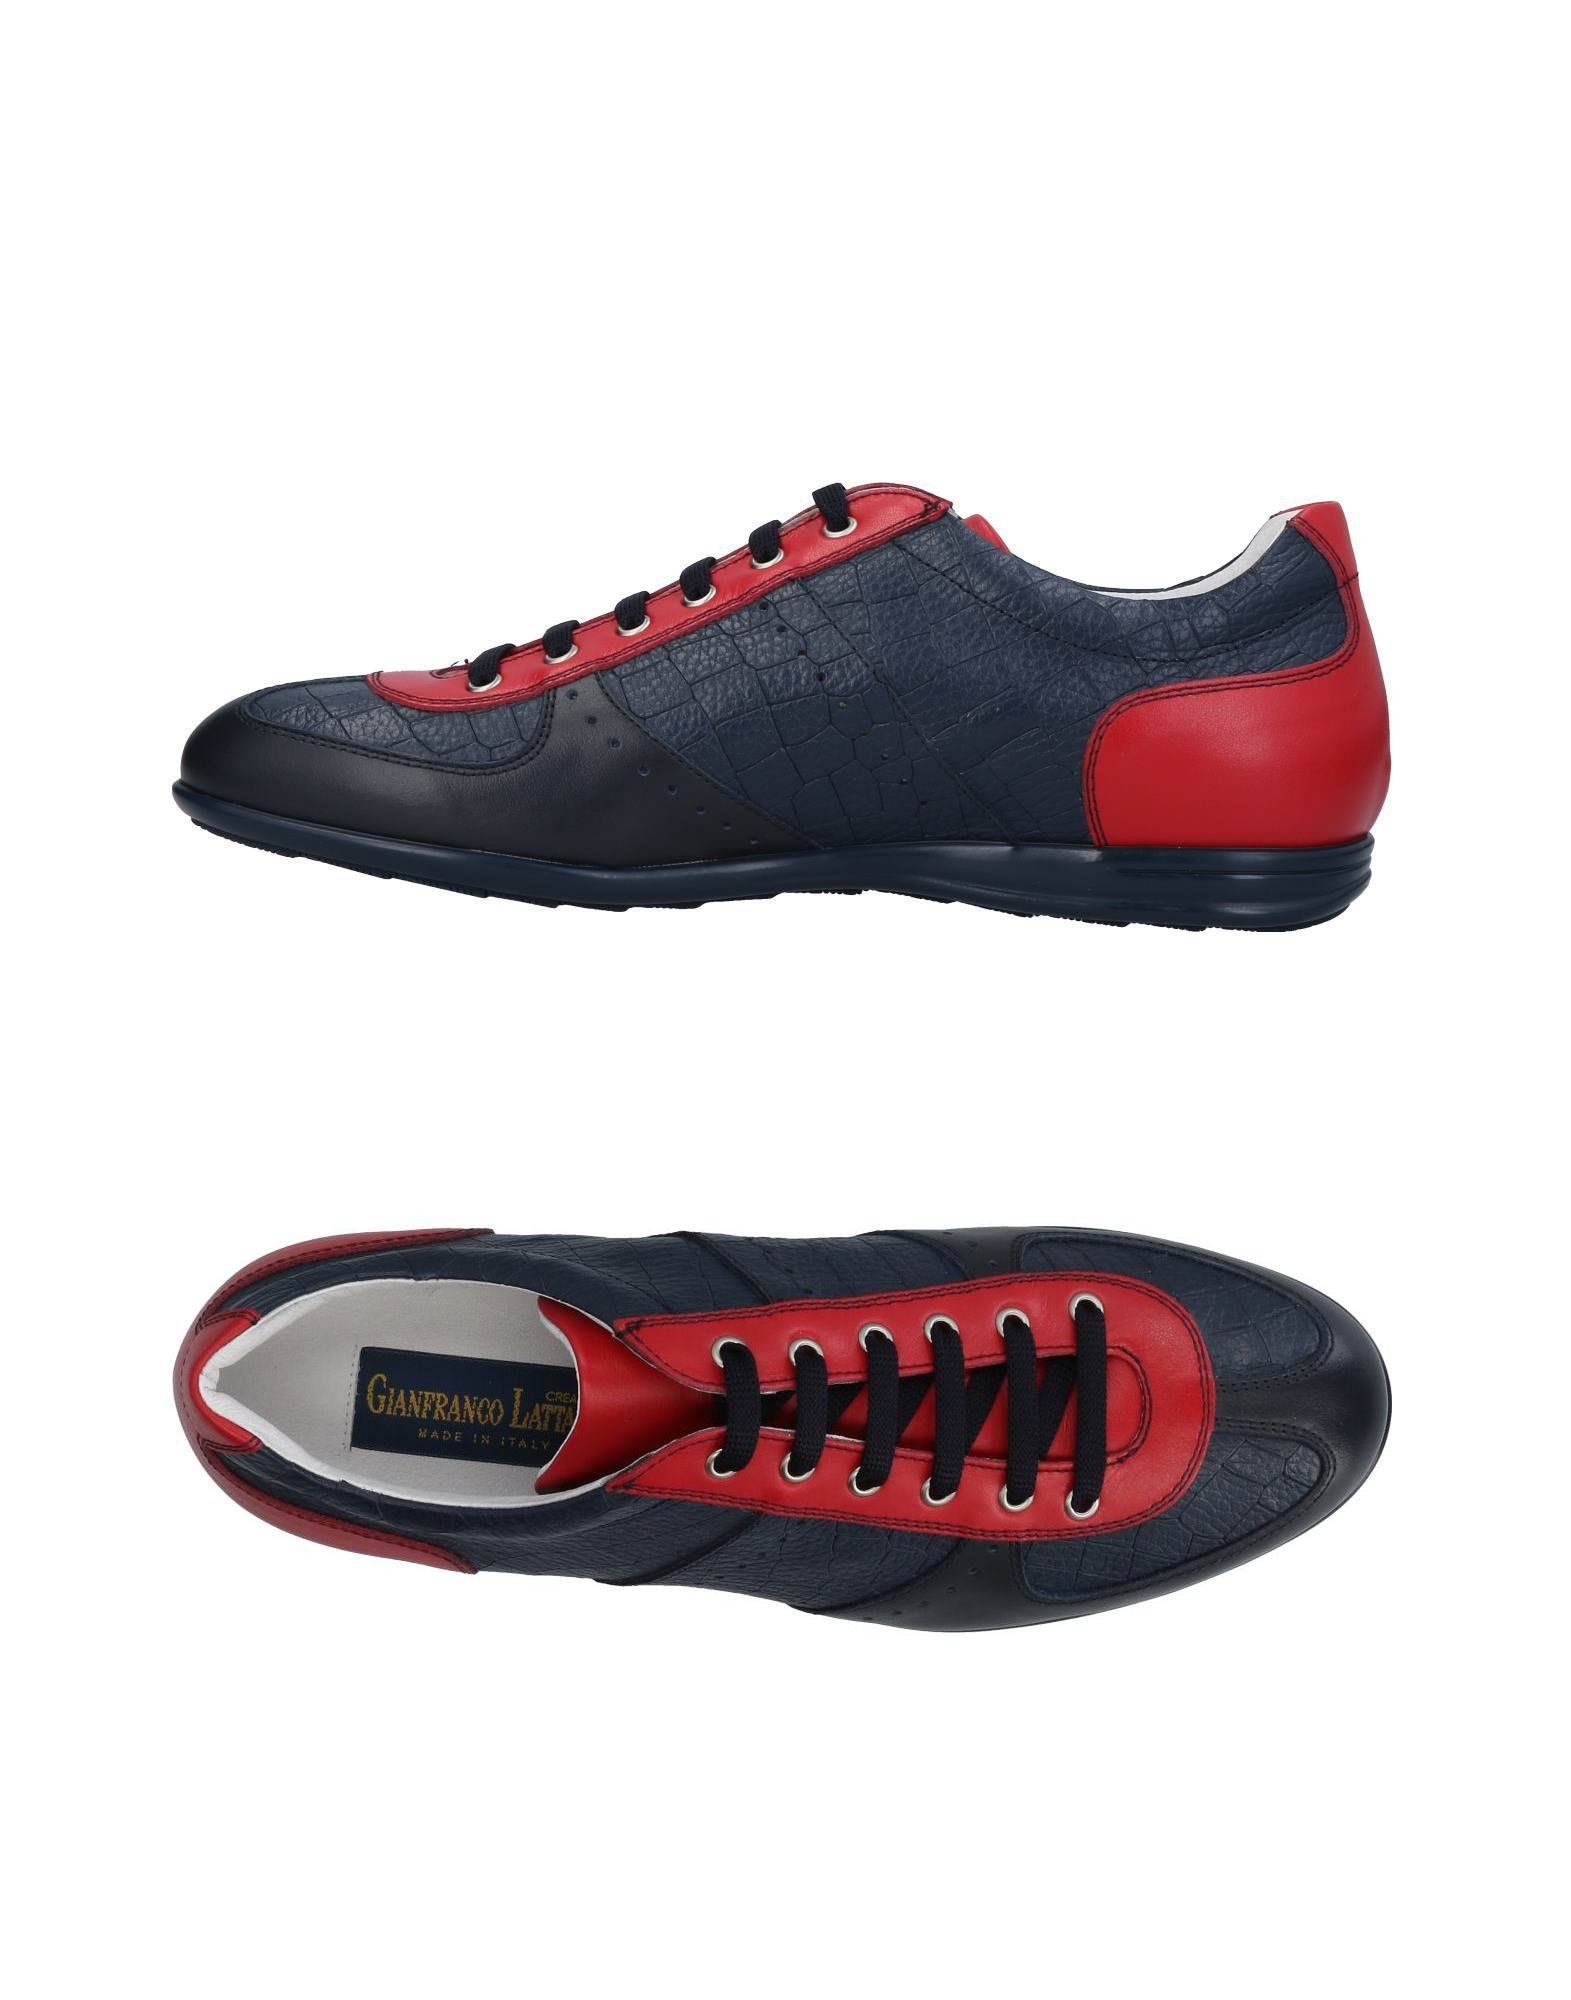 Sneakers Gianfranco Lattanzi Uomo - 11430202OE